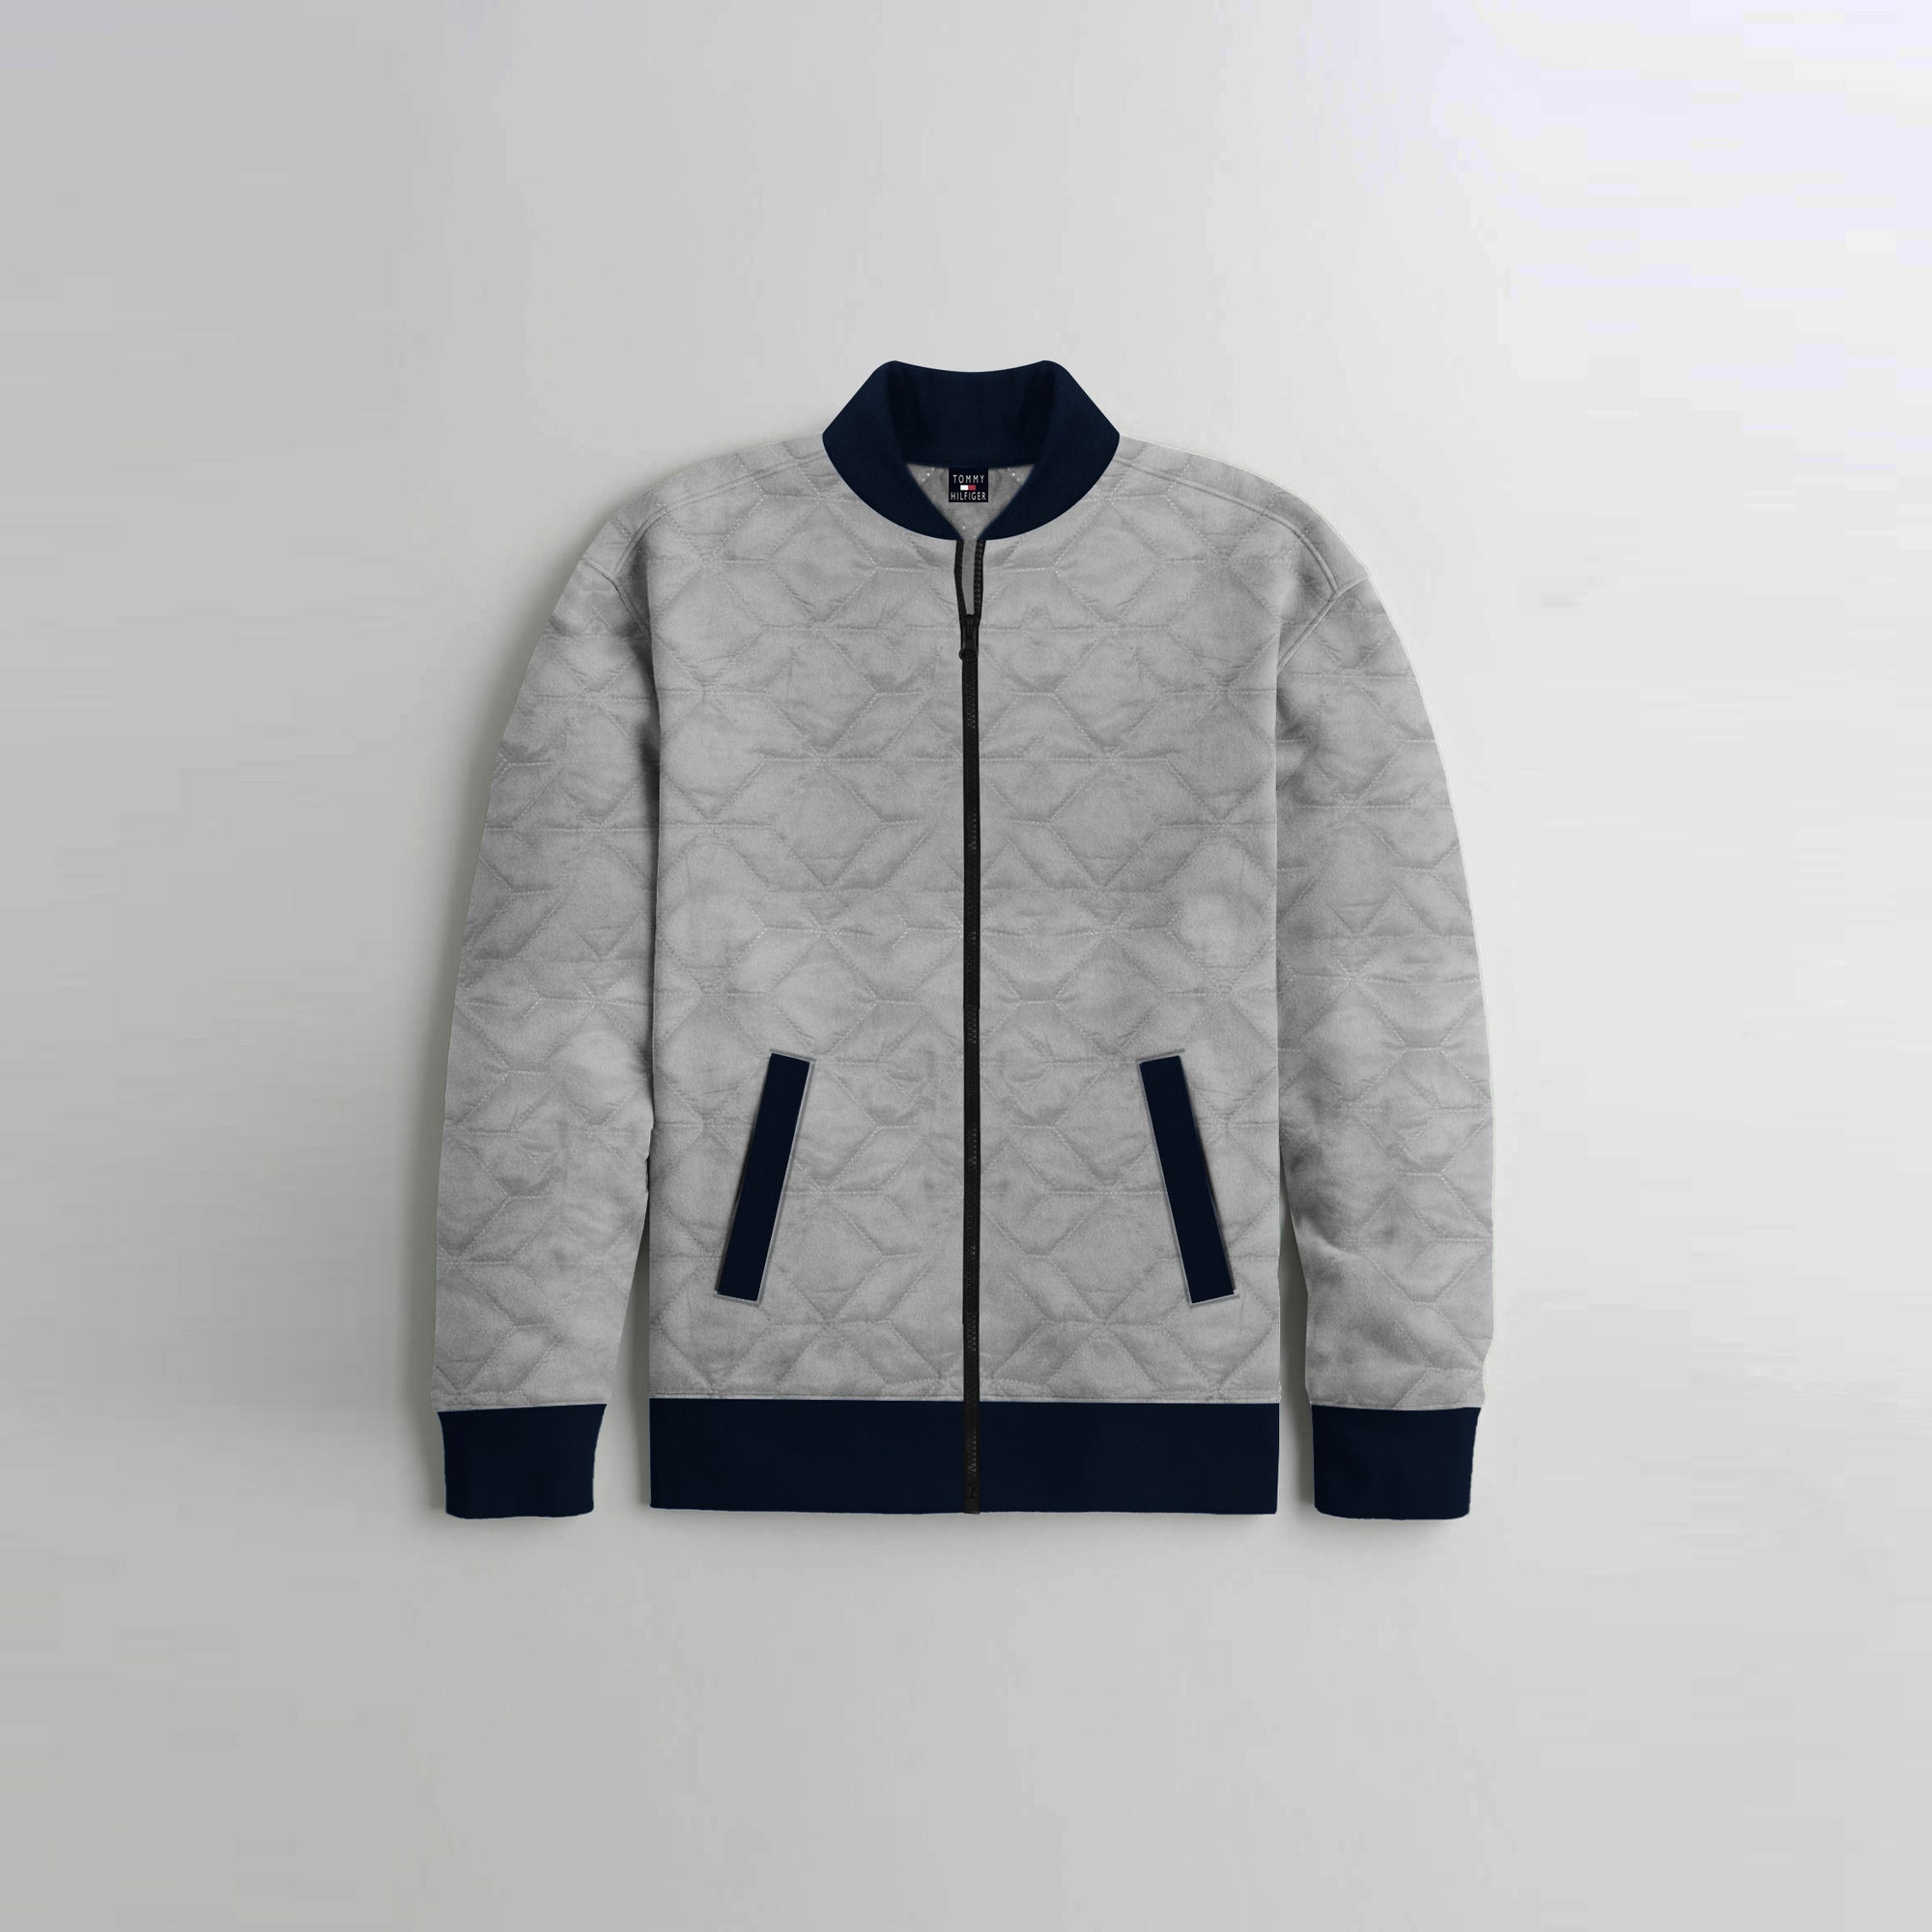 TH Quilted Zipper Baseball Jacket For Kids-Light Grey With Navy Contrast-NA12119